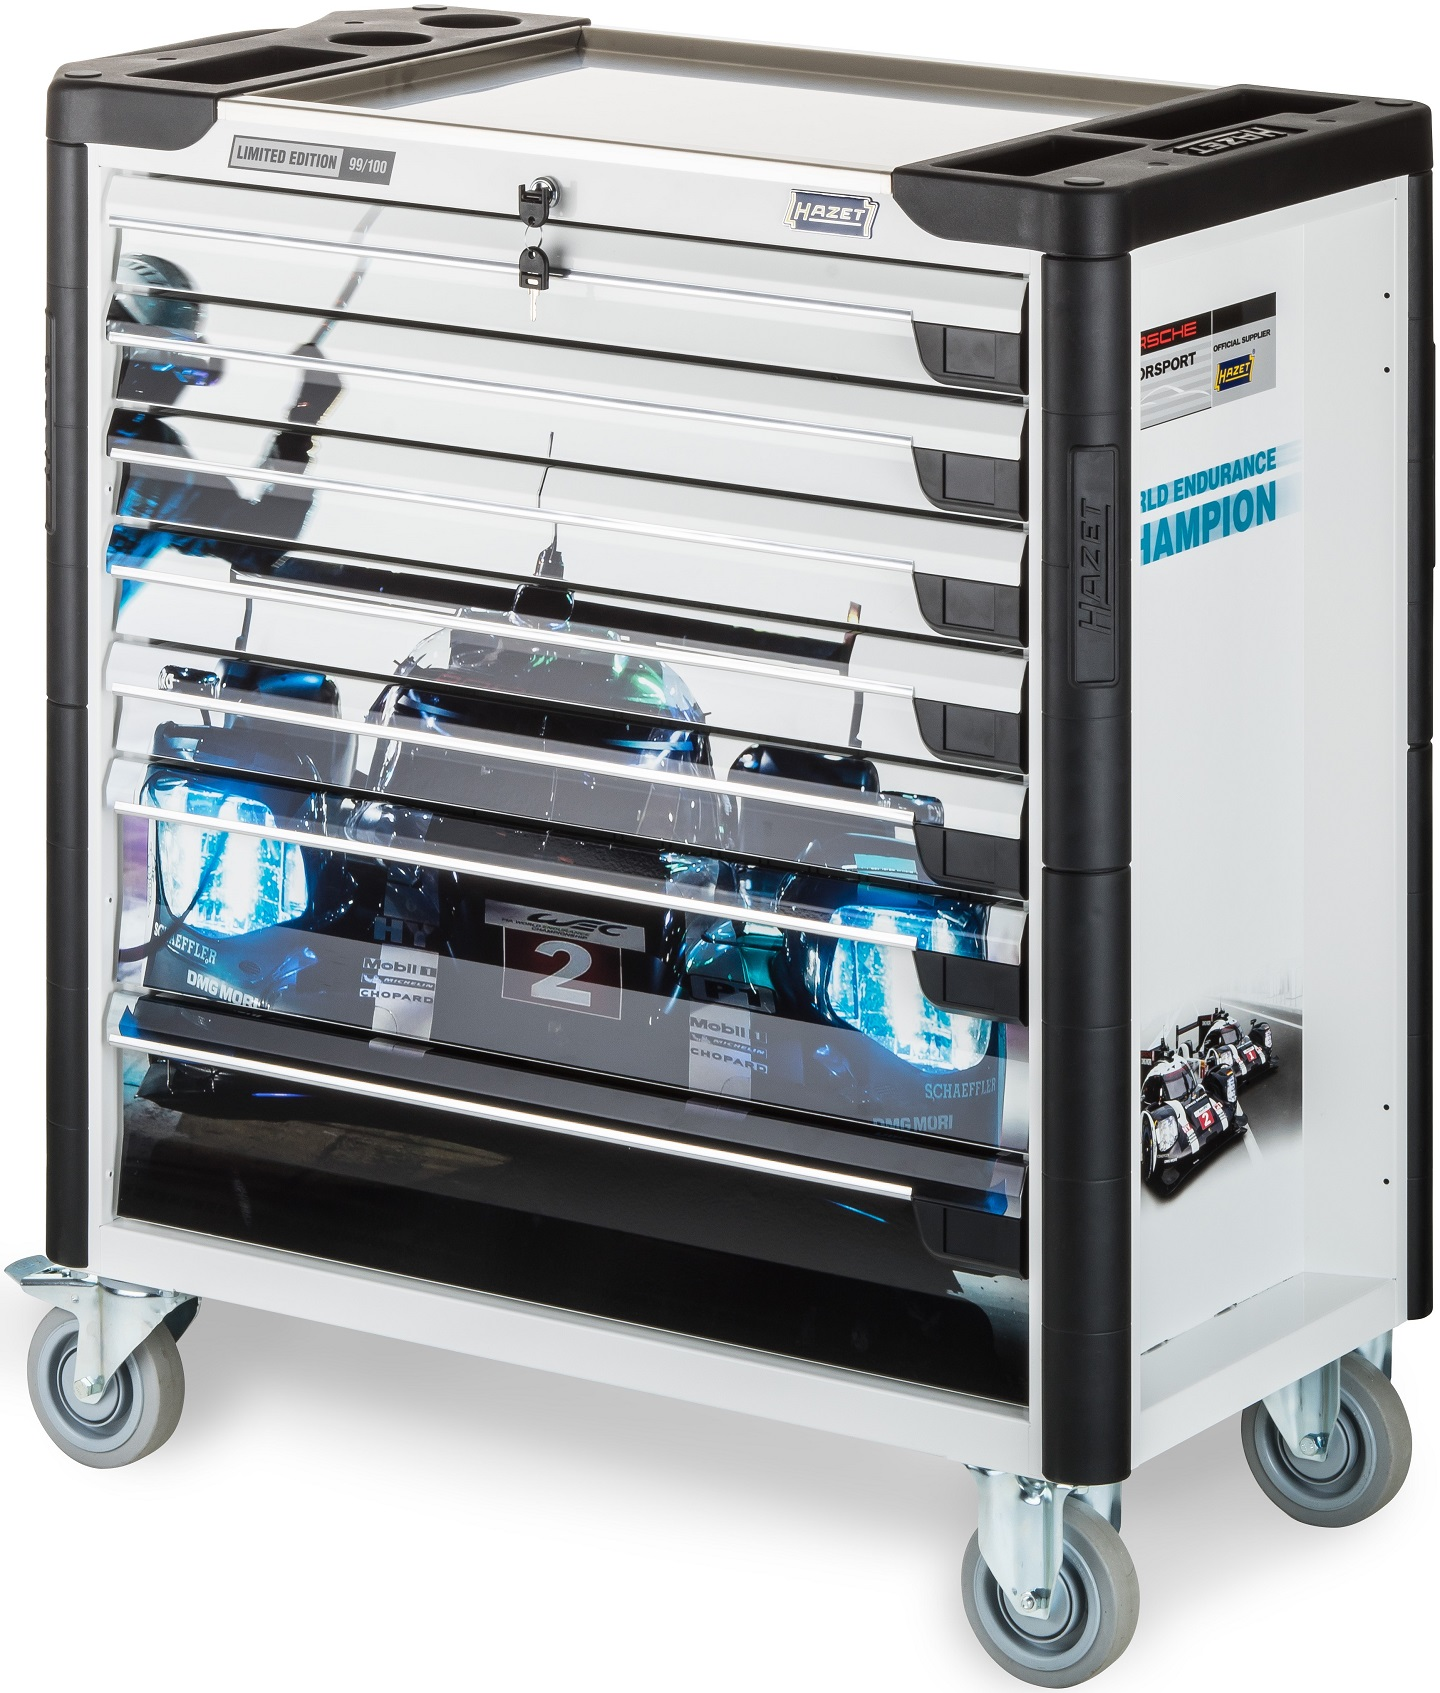 Hazet 179XL-7PDW Limited Editon Porsche Motorsport Tool Trolley White by Hazet of Germany